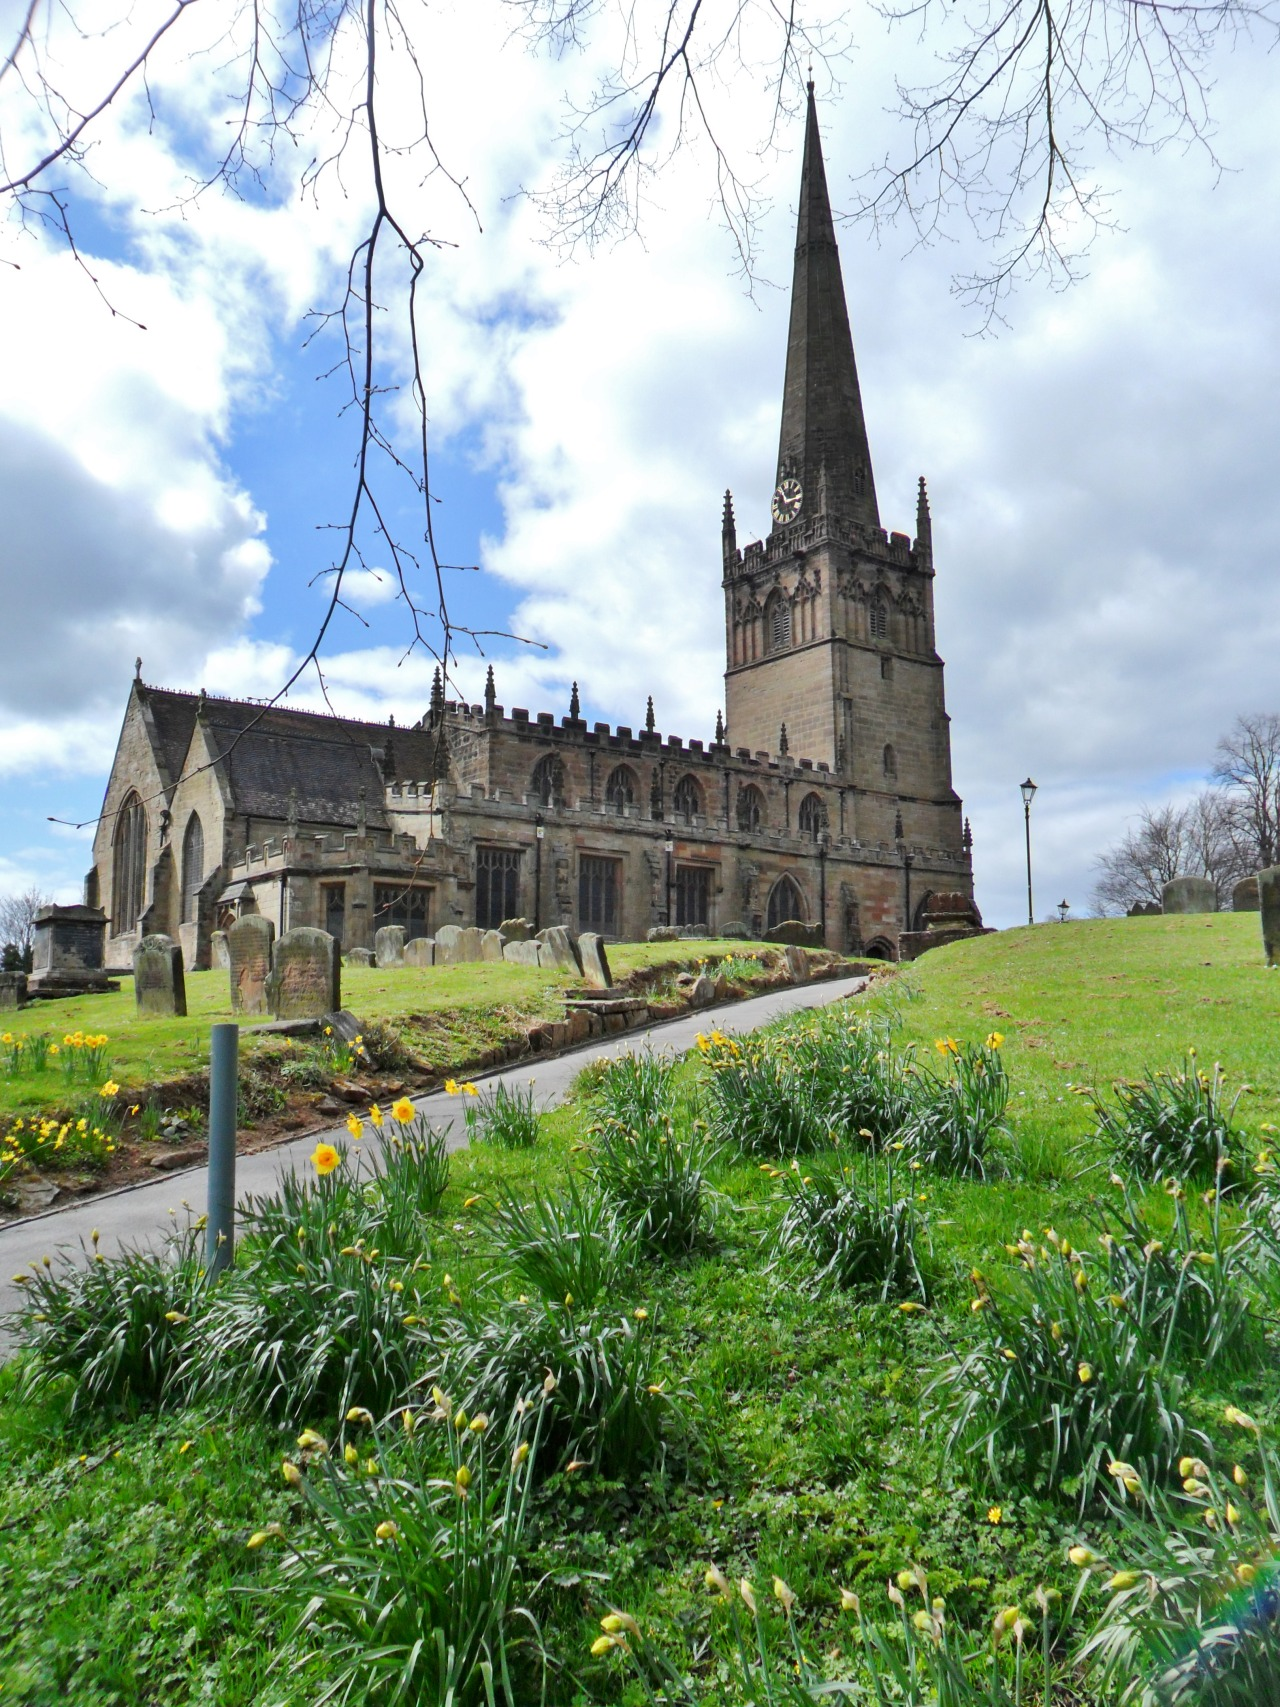 vwcampervan-aldridge:  Daffodils and cloudy skies St John's Church Bromsgrove, Worcestershire, England All Original Photography by http://vwcampervan-aldridge.tumblr.com